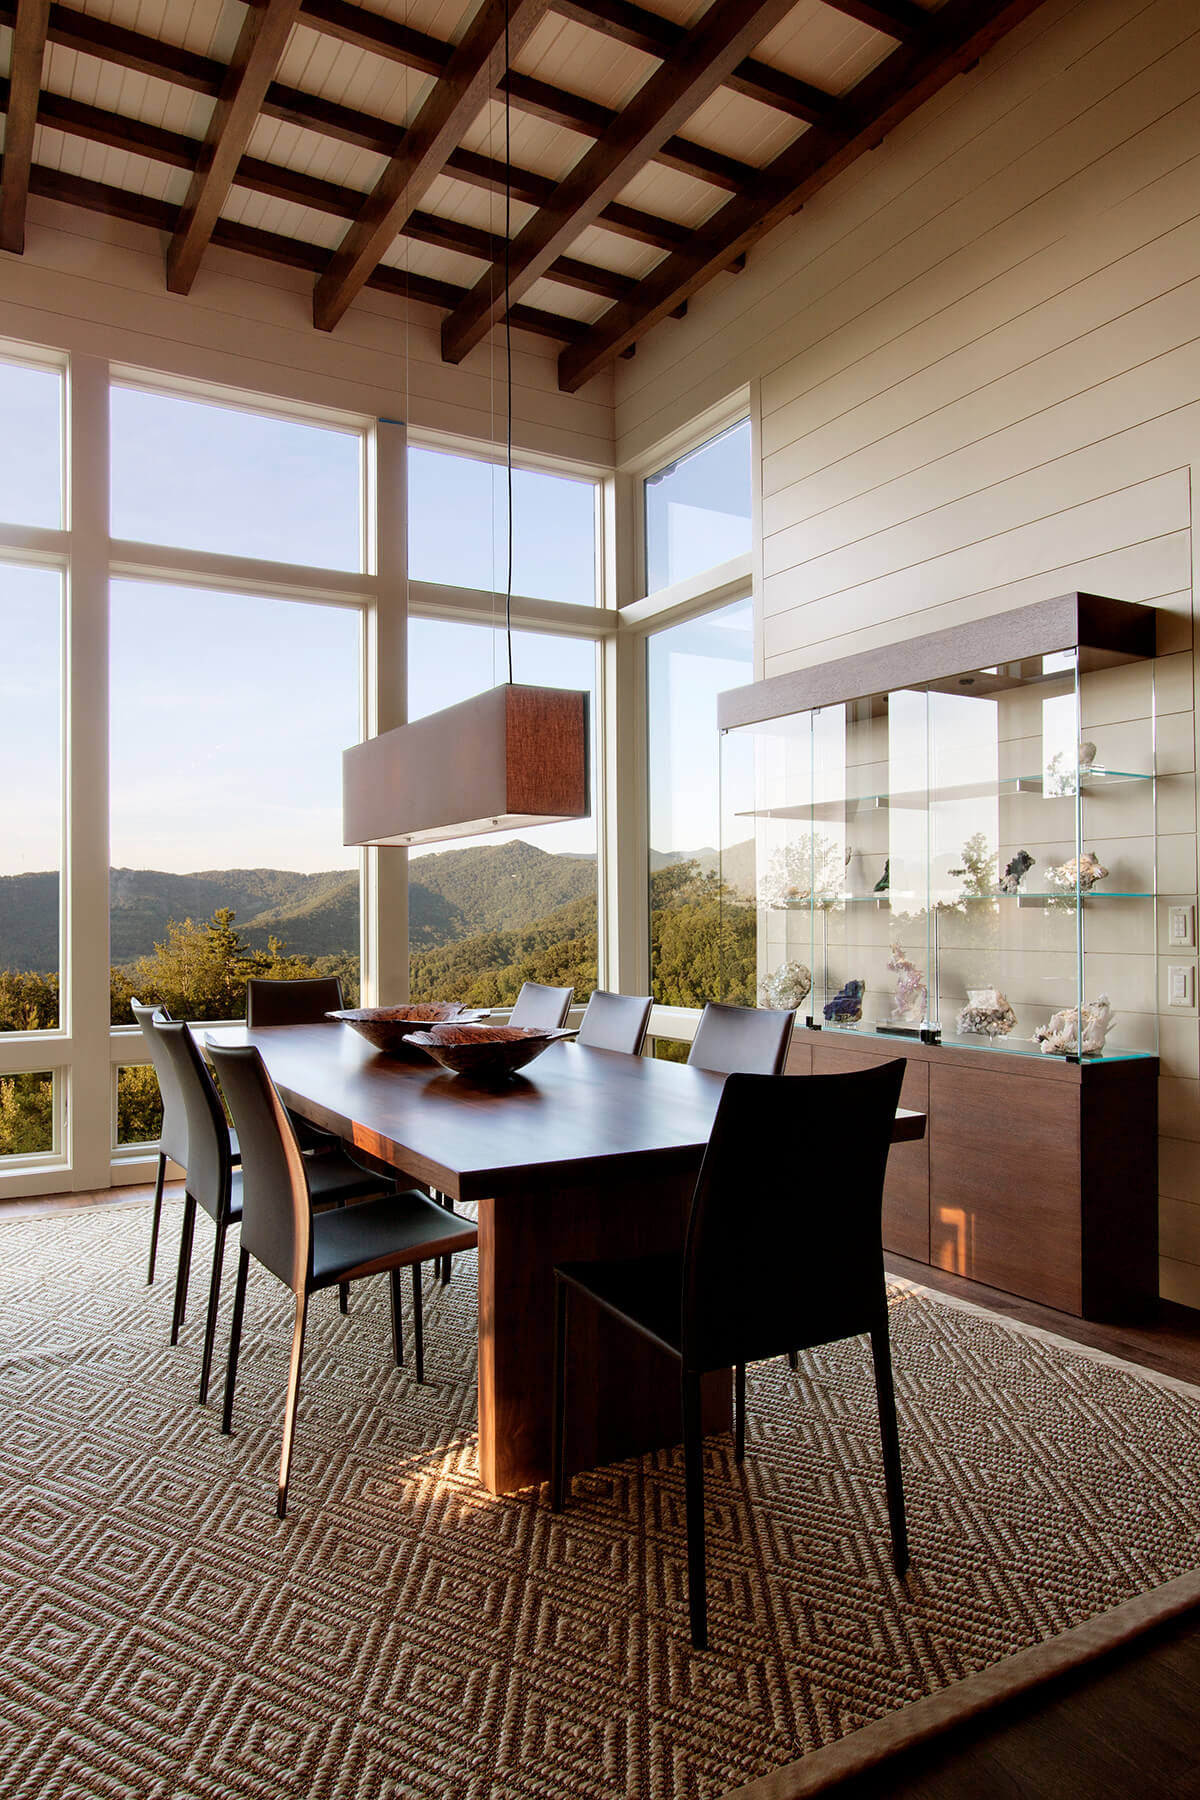 Town Mountain residence architectural design by Samsel Architects